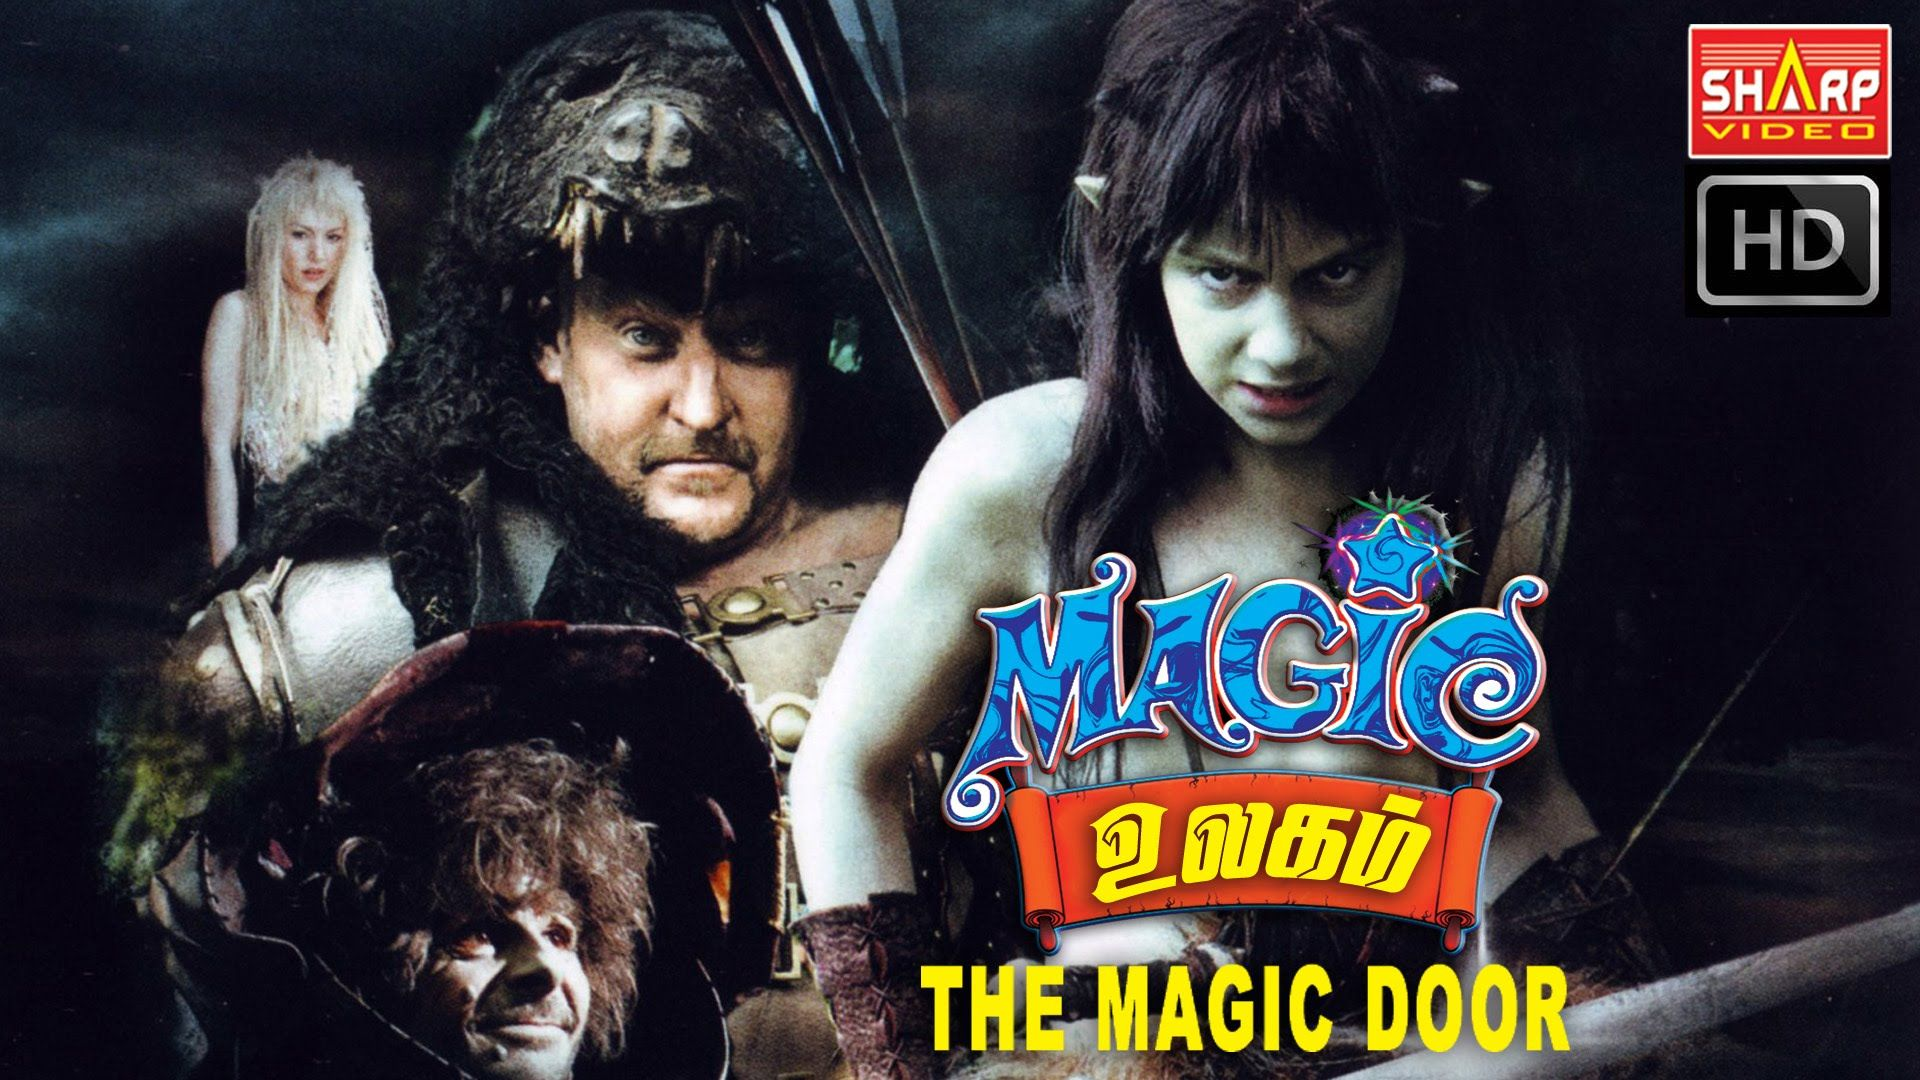 The Magic Door Hollywood Tamil Dubbed Hd Movie Sharpvideo Movie